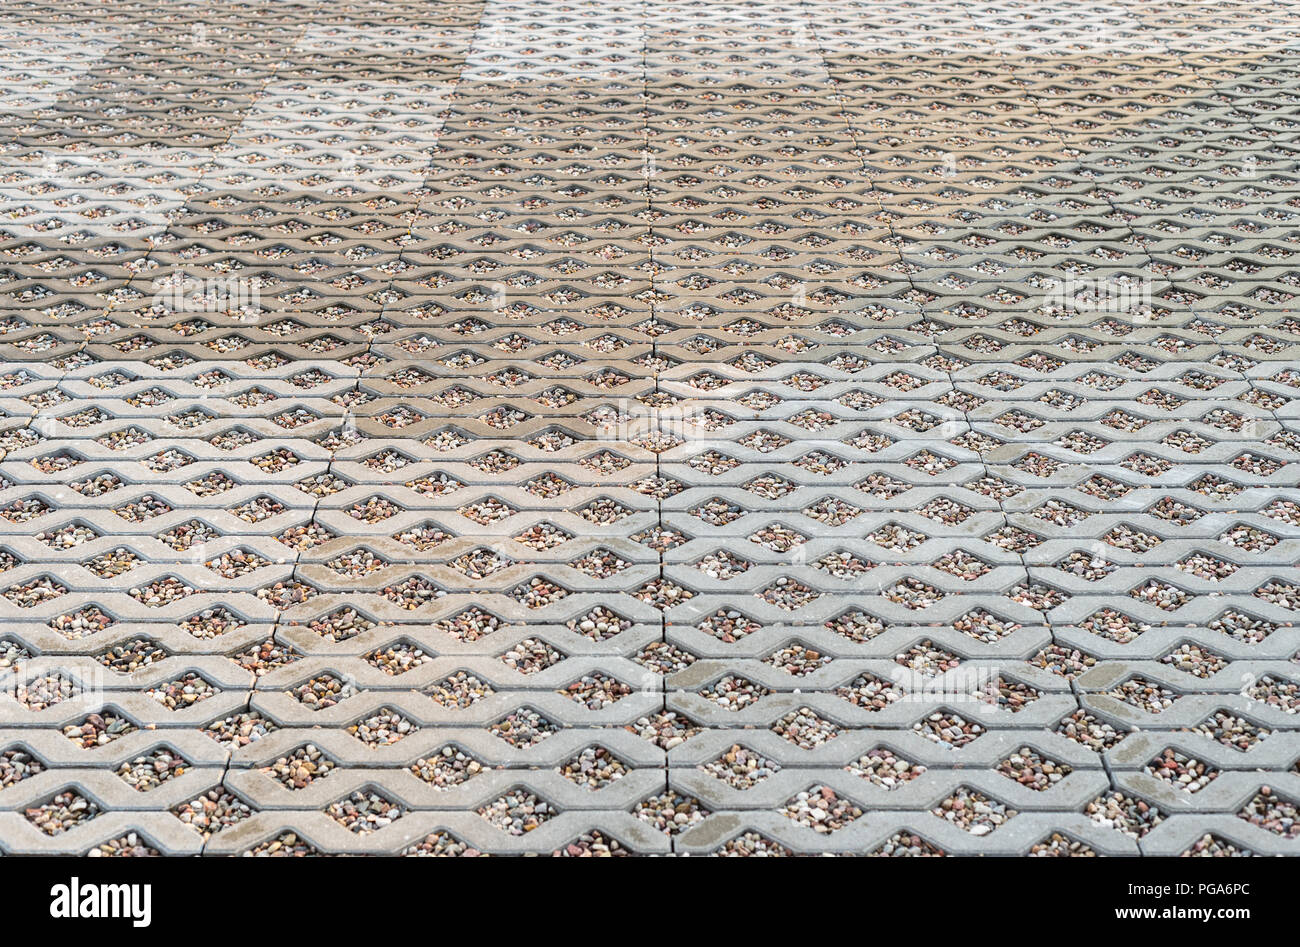 Wet openwork concrete pavement filled with colorful pebbles. - Stock Image